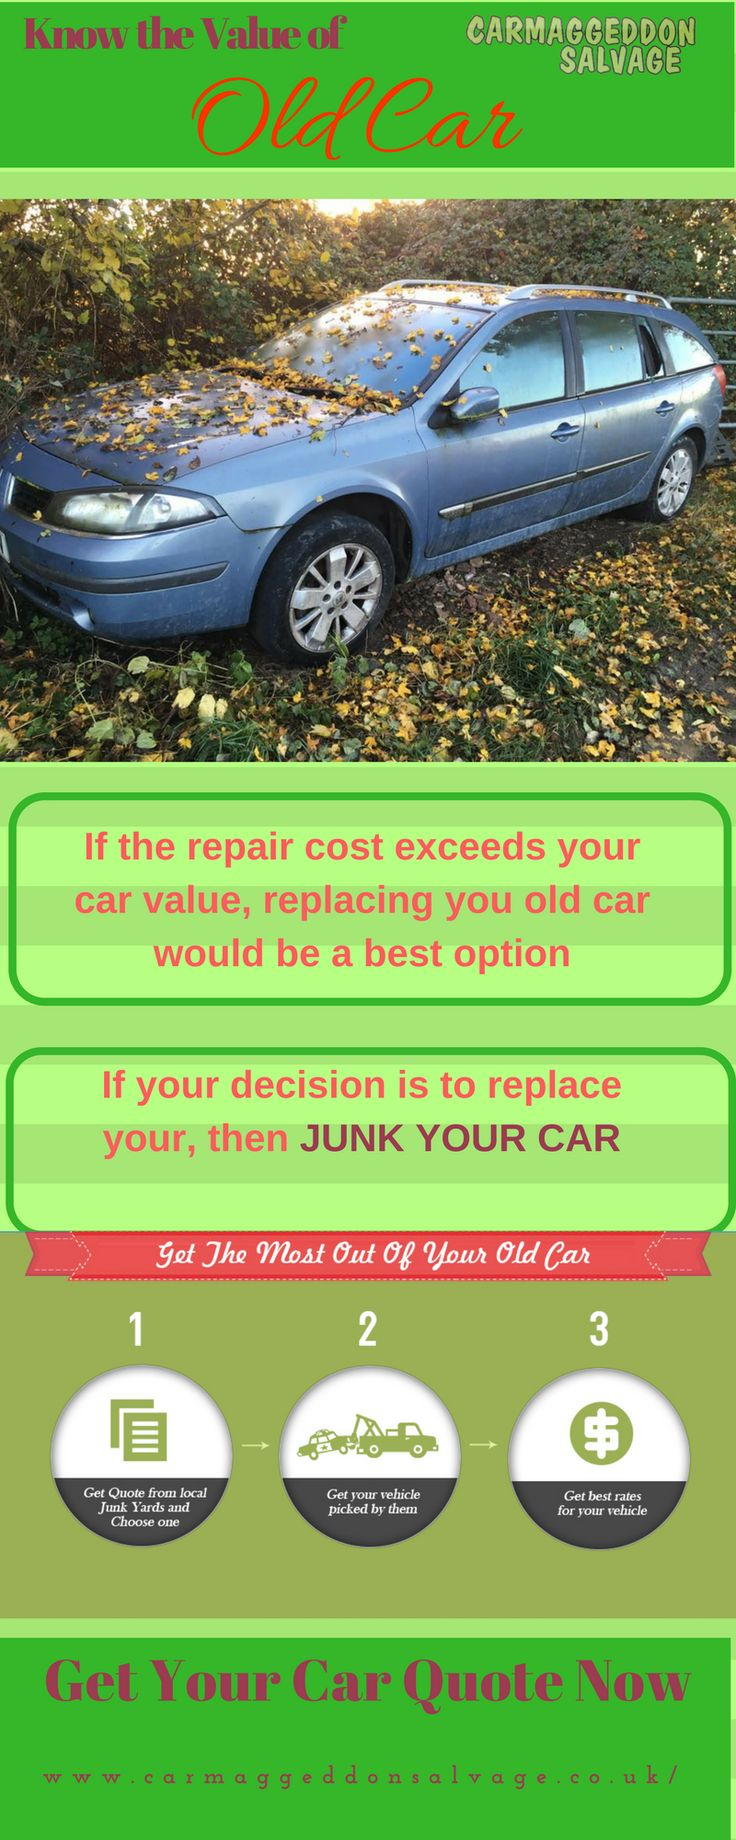 23 best Scrap & Salvage Car Quotes images on Pinterest | Car ...